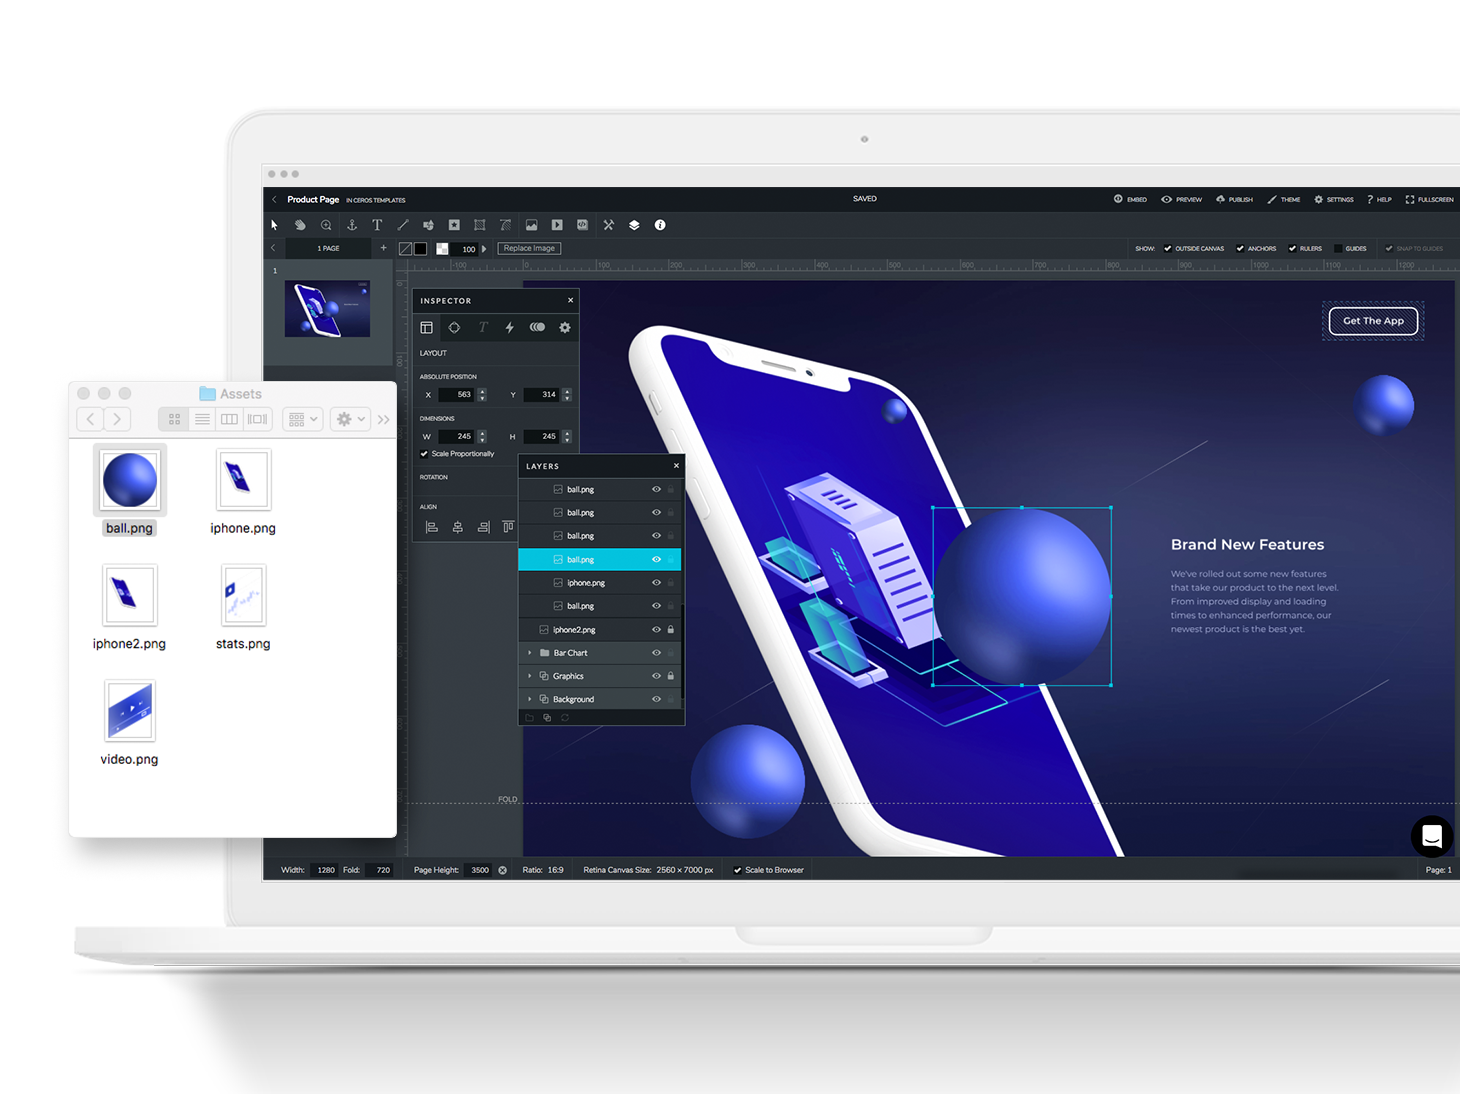 Drag and drop assets from your desktop into the Ceros studio.